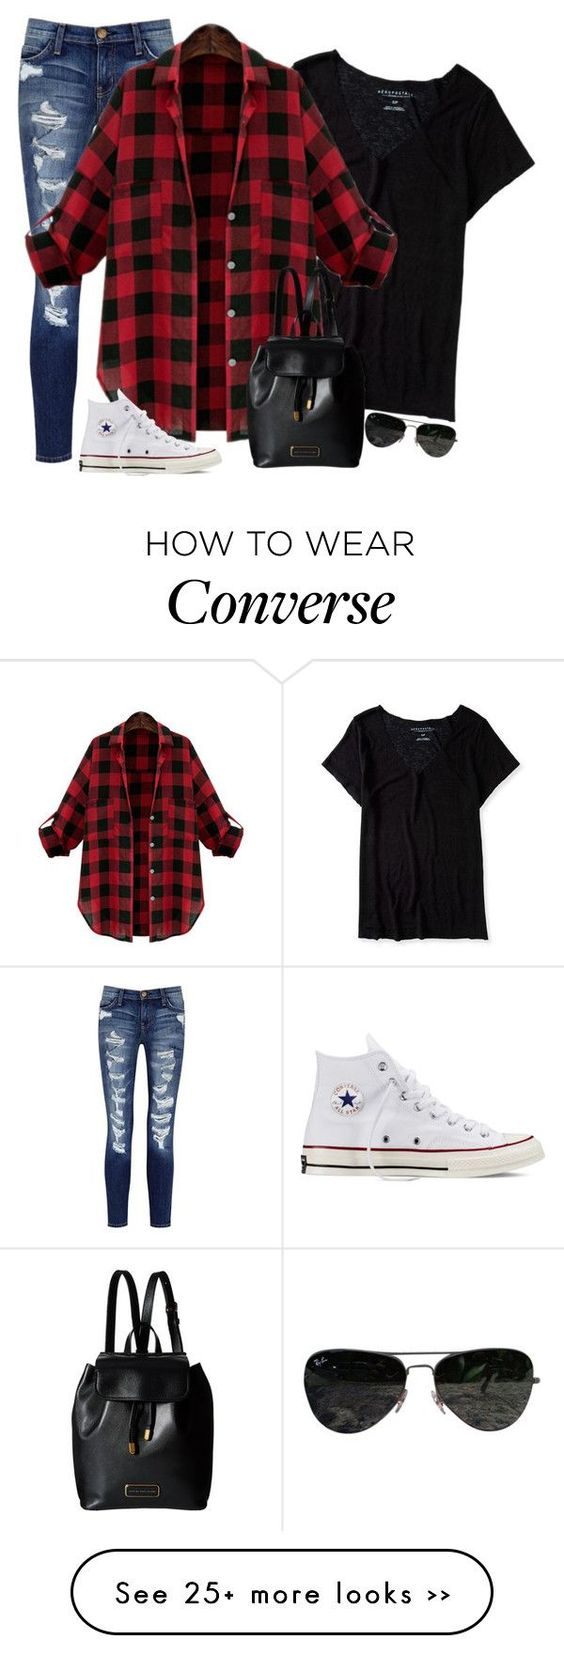 """""""Football Fashion"""" by selenaforever4 on Polyvore featuring Current/Elliott, Aéropostale, Converse, Marc by Marc Jacobs, Ray-Ban and footballfashion"""